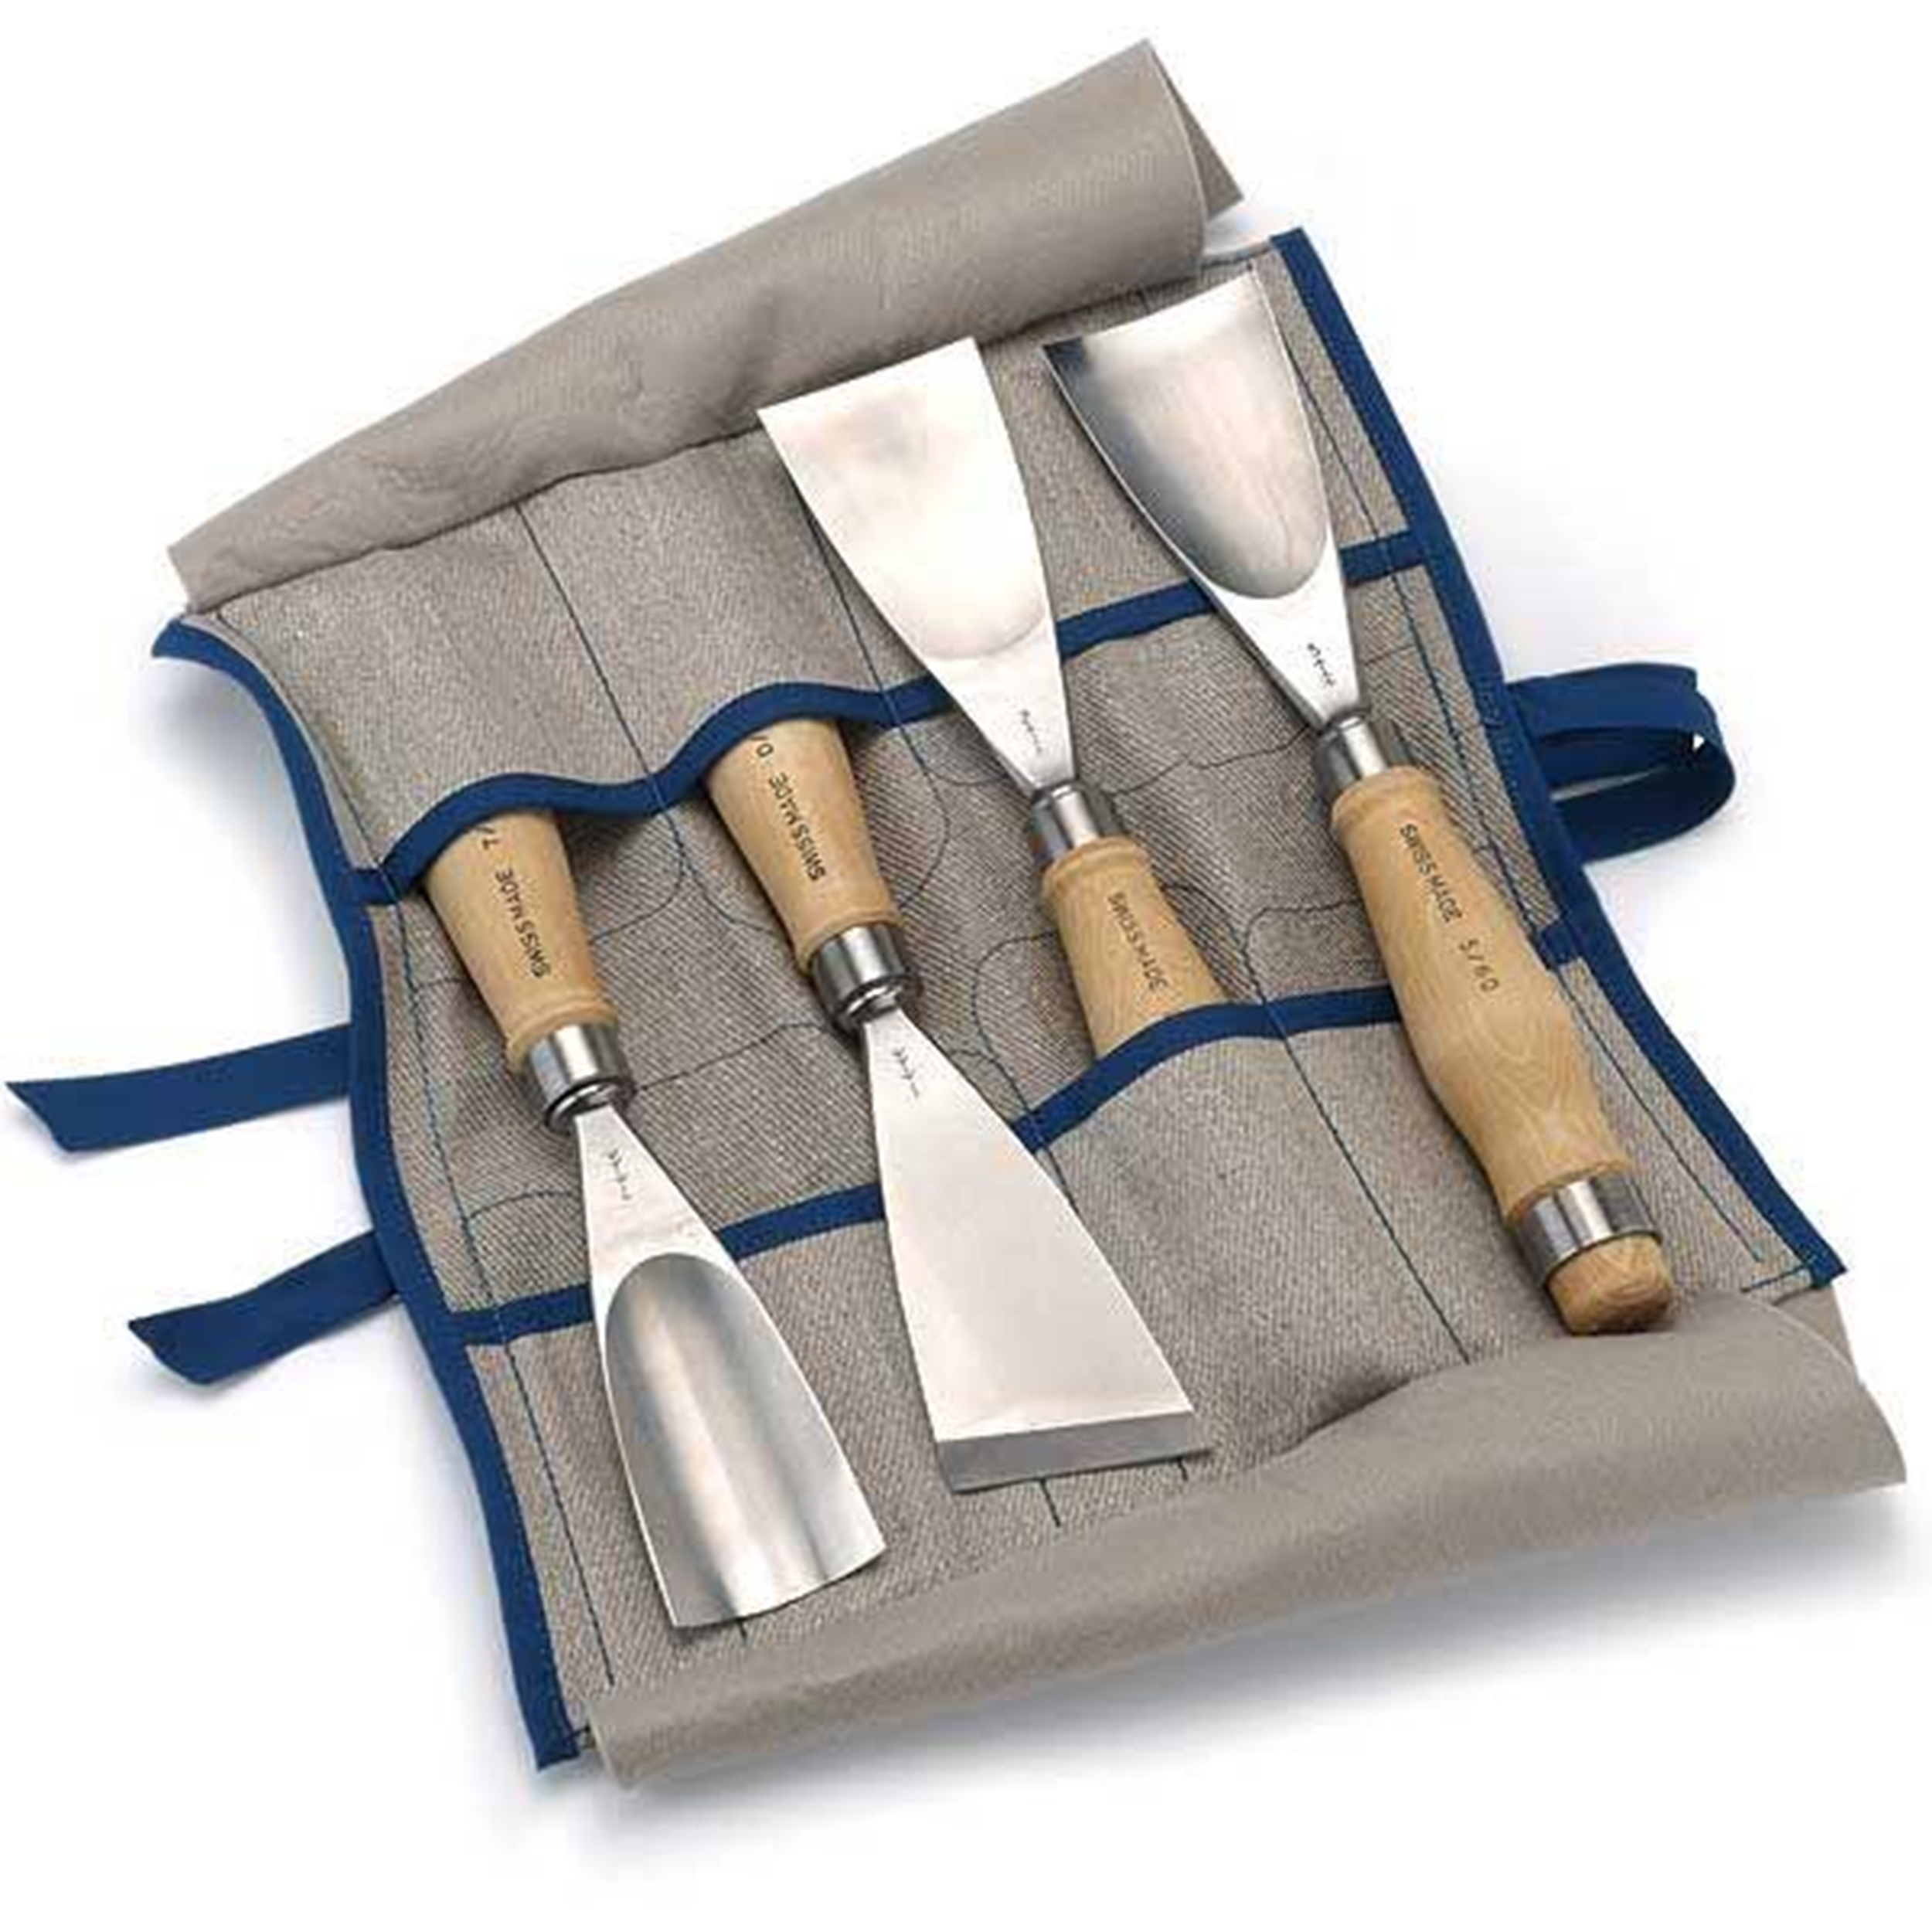 "PFEIL ""Swiss Made"" Fishtail Gouge Set, 4 piece"